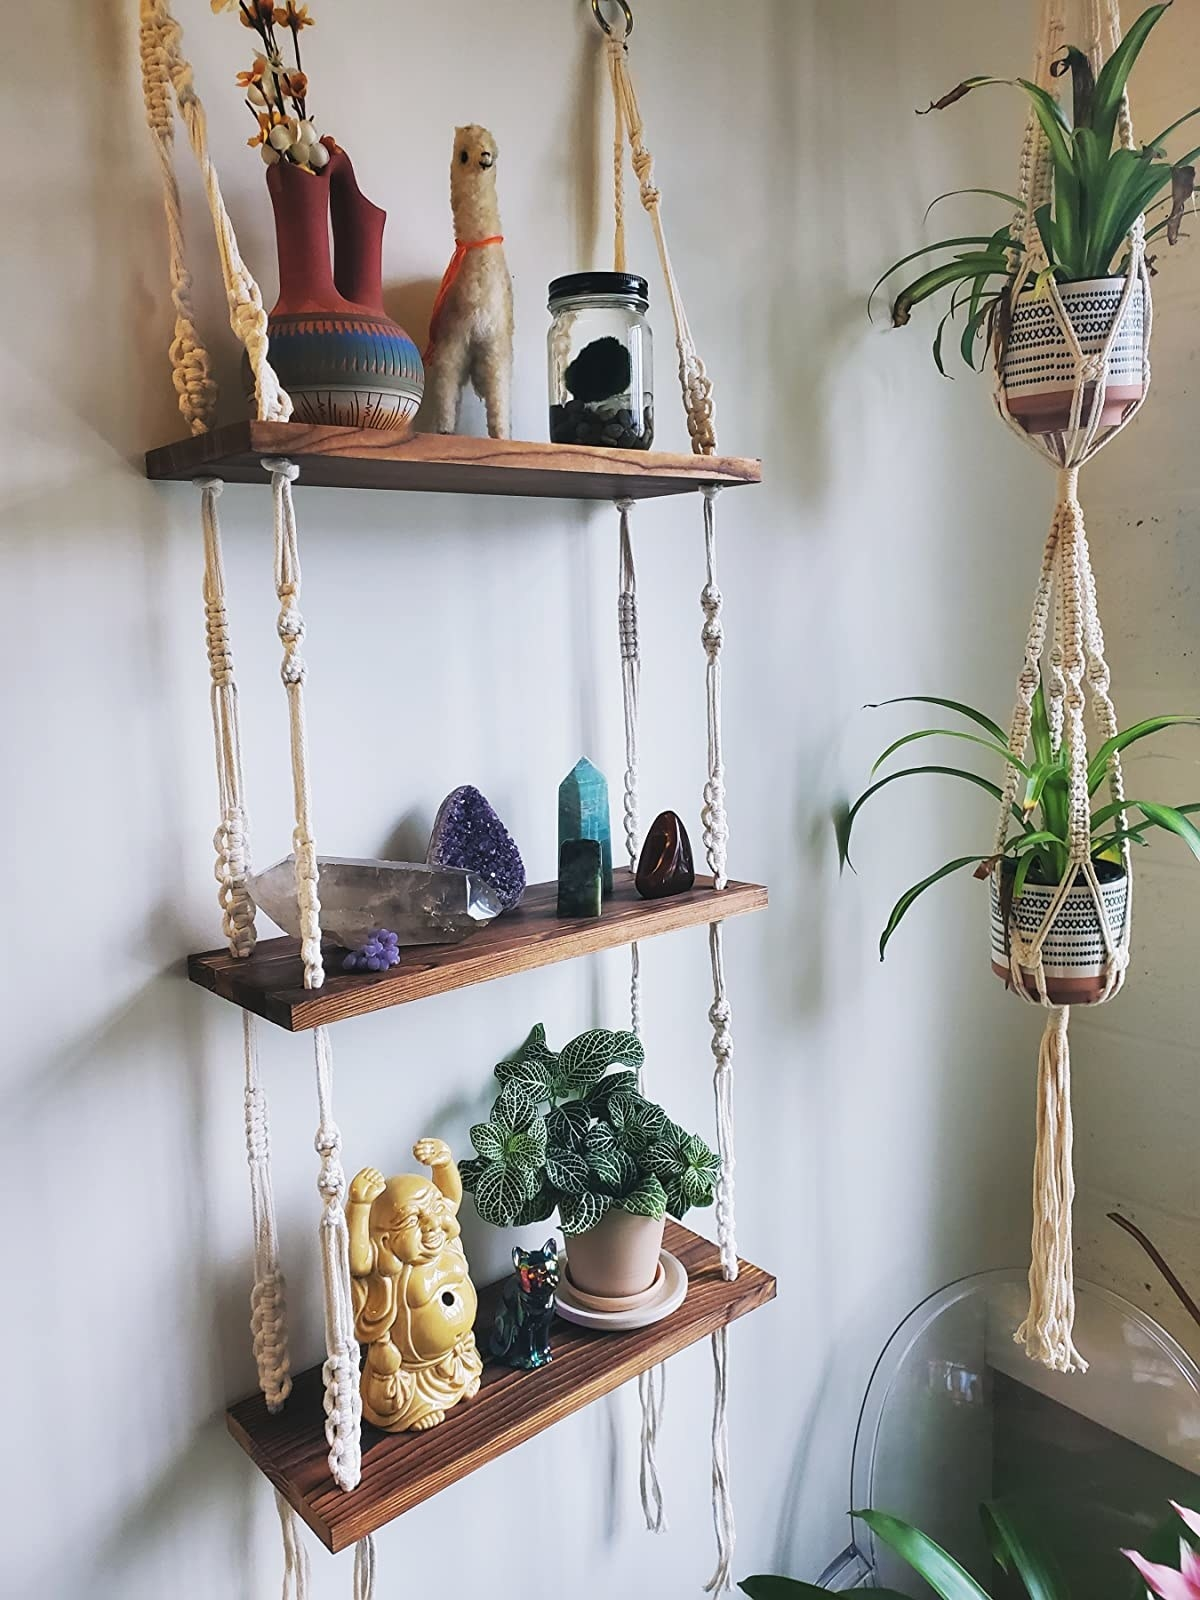 Reviewer's hanging shelves house small nicknames like crystals, plants, and figurines